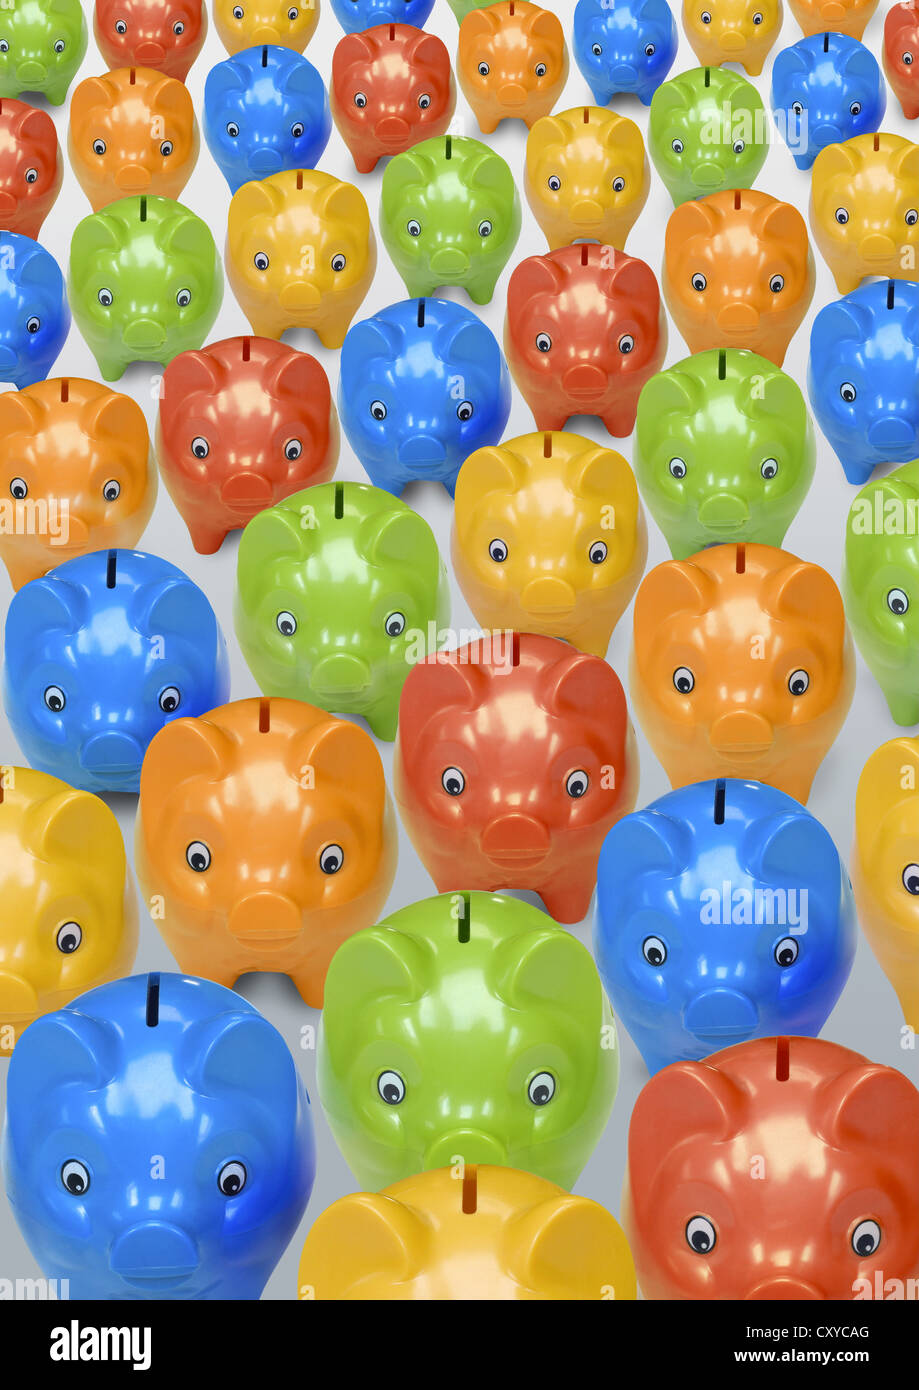 Many colourful piggy banks - Stock Image